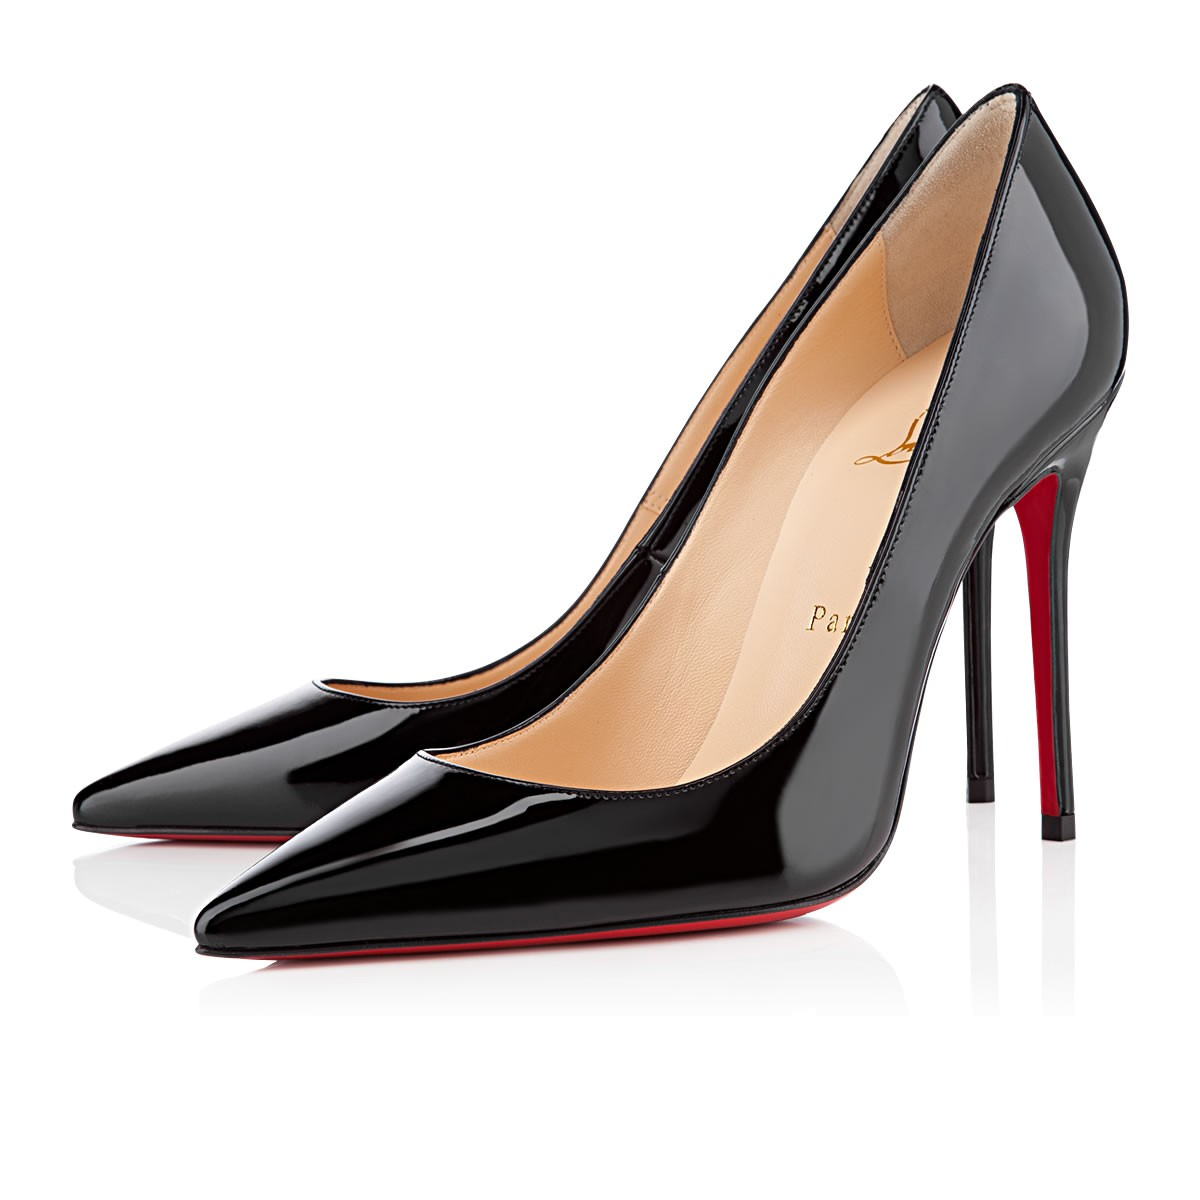 decollete 554 100 black patent leather women shoes christian rh us christianlouboutin com price of louboutin shoes in paris louboutin shoes price most expensive